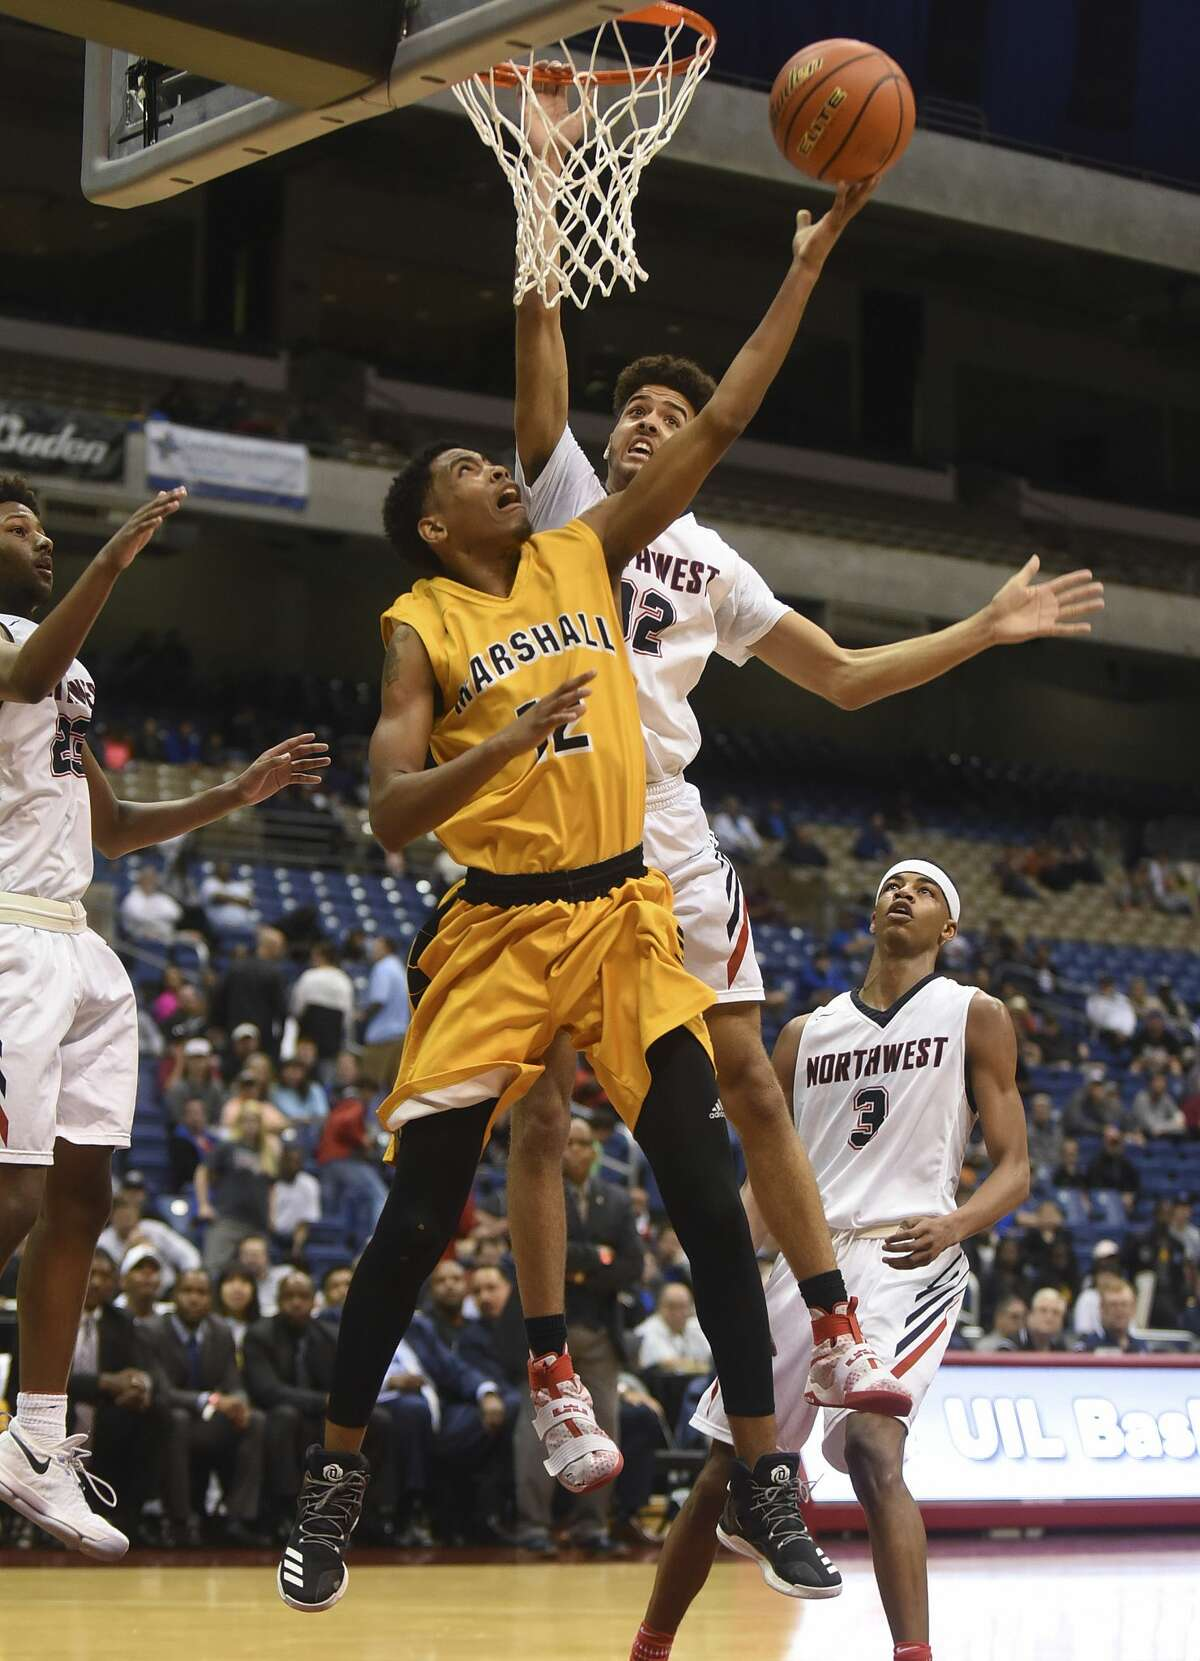 Tajzmel Sherman of Fort Bend Marshall shoots a reverse layup as Jay Am'Mons of Northwest defends during second-half Class 5A state semifinals action in the Alamodome on Thursday, March 9, 2017.